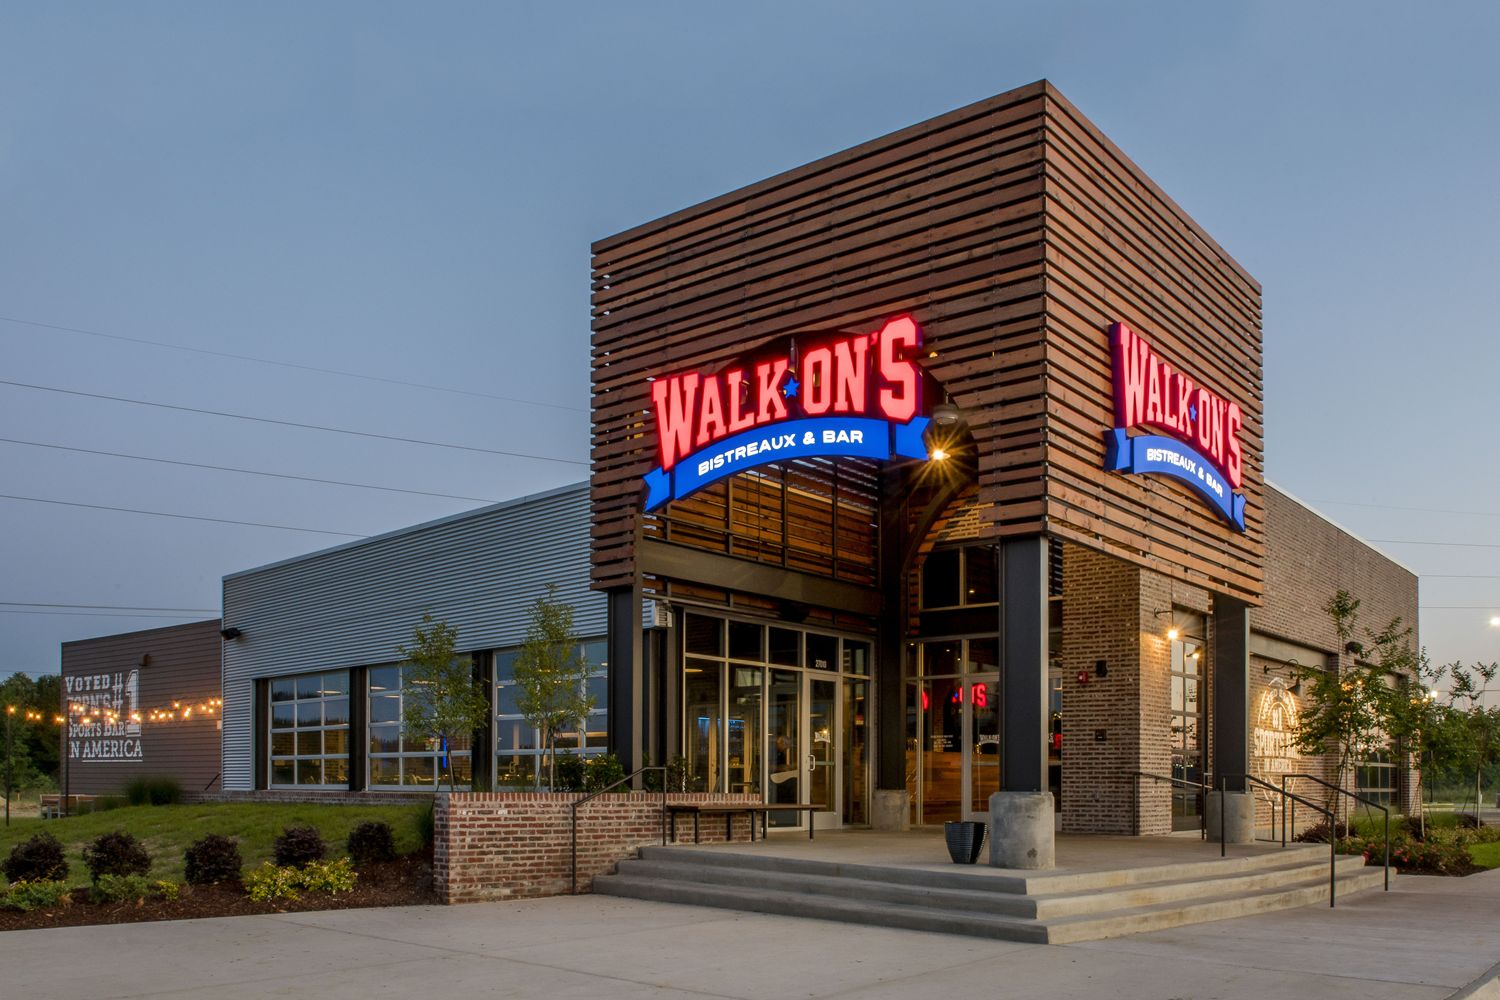 Walk ons lake charles